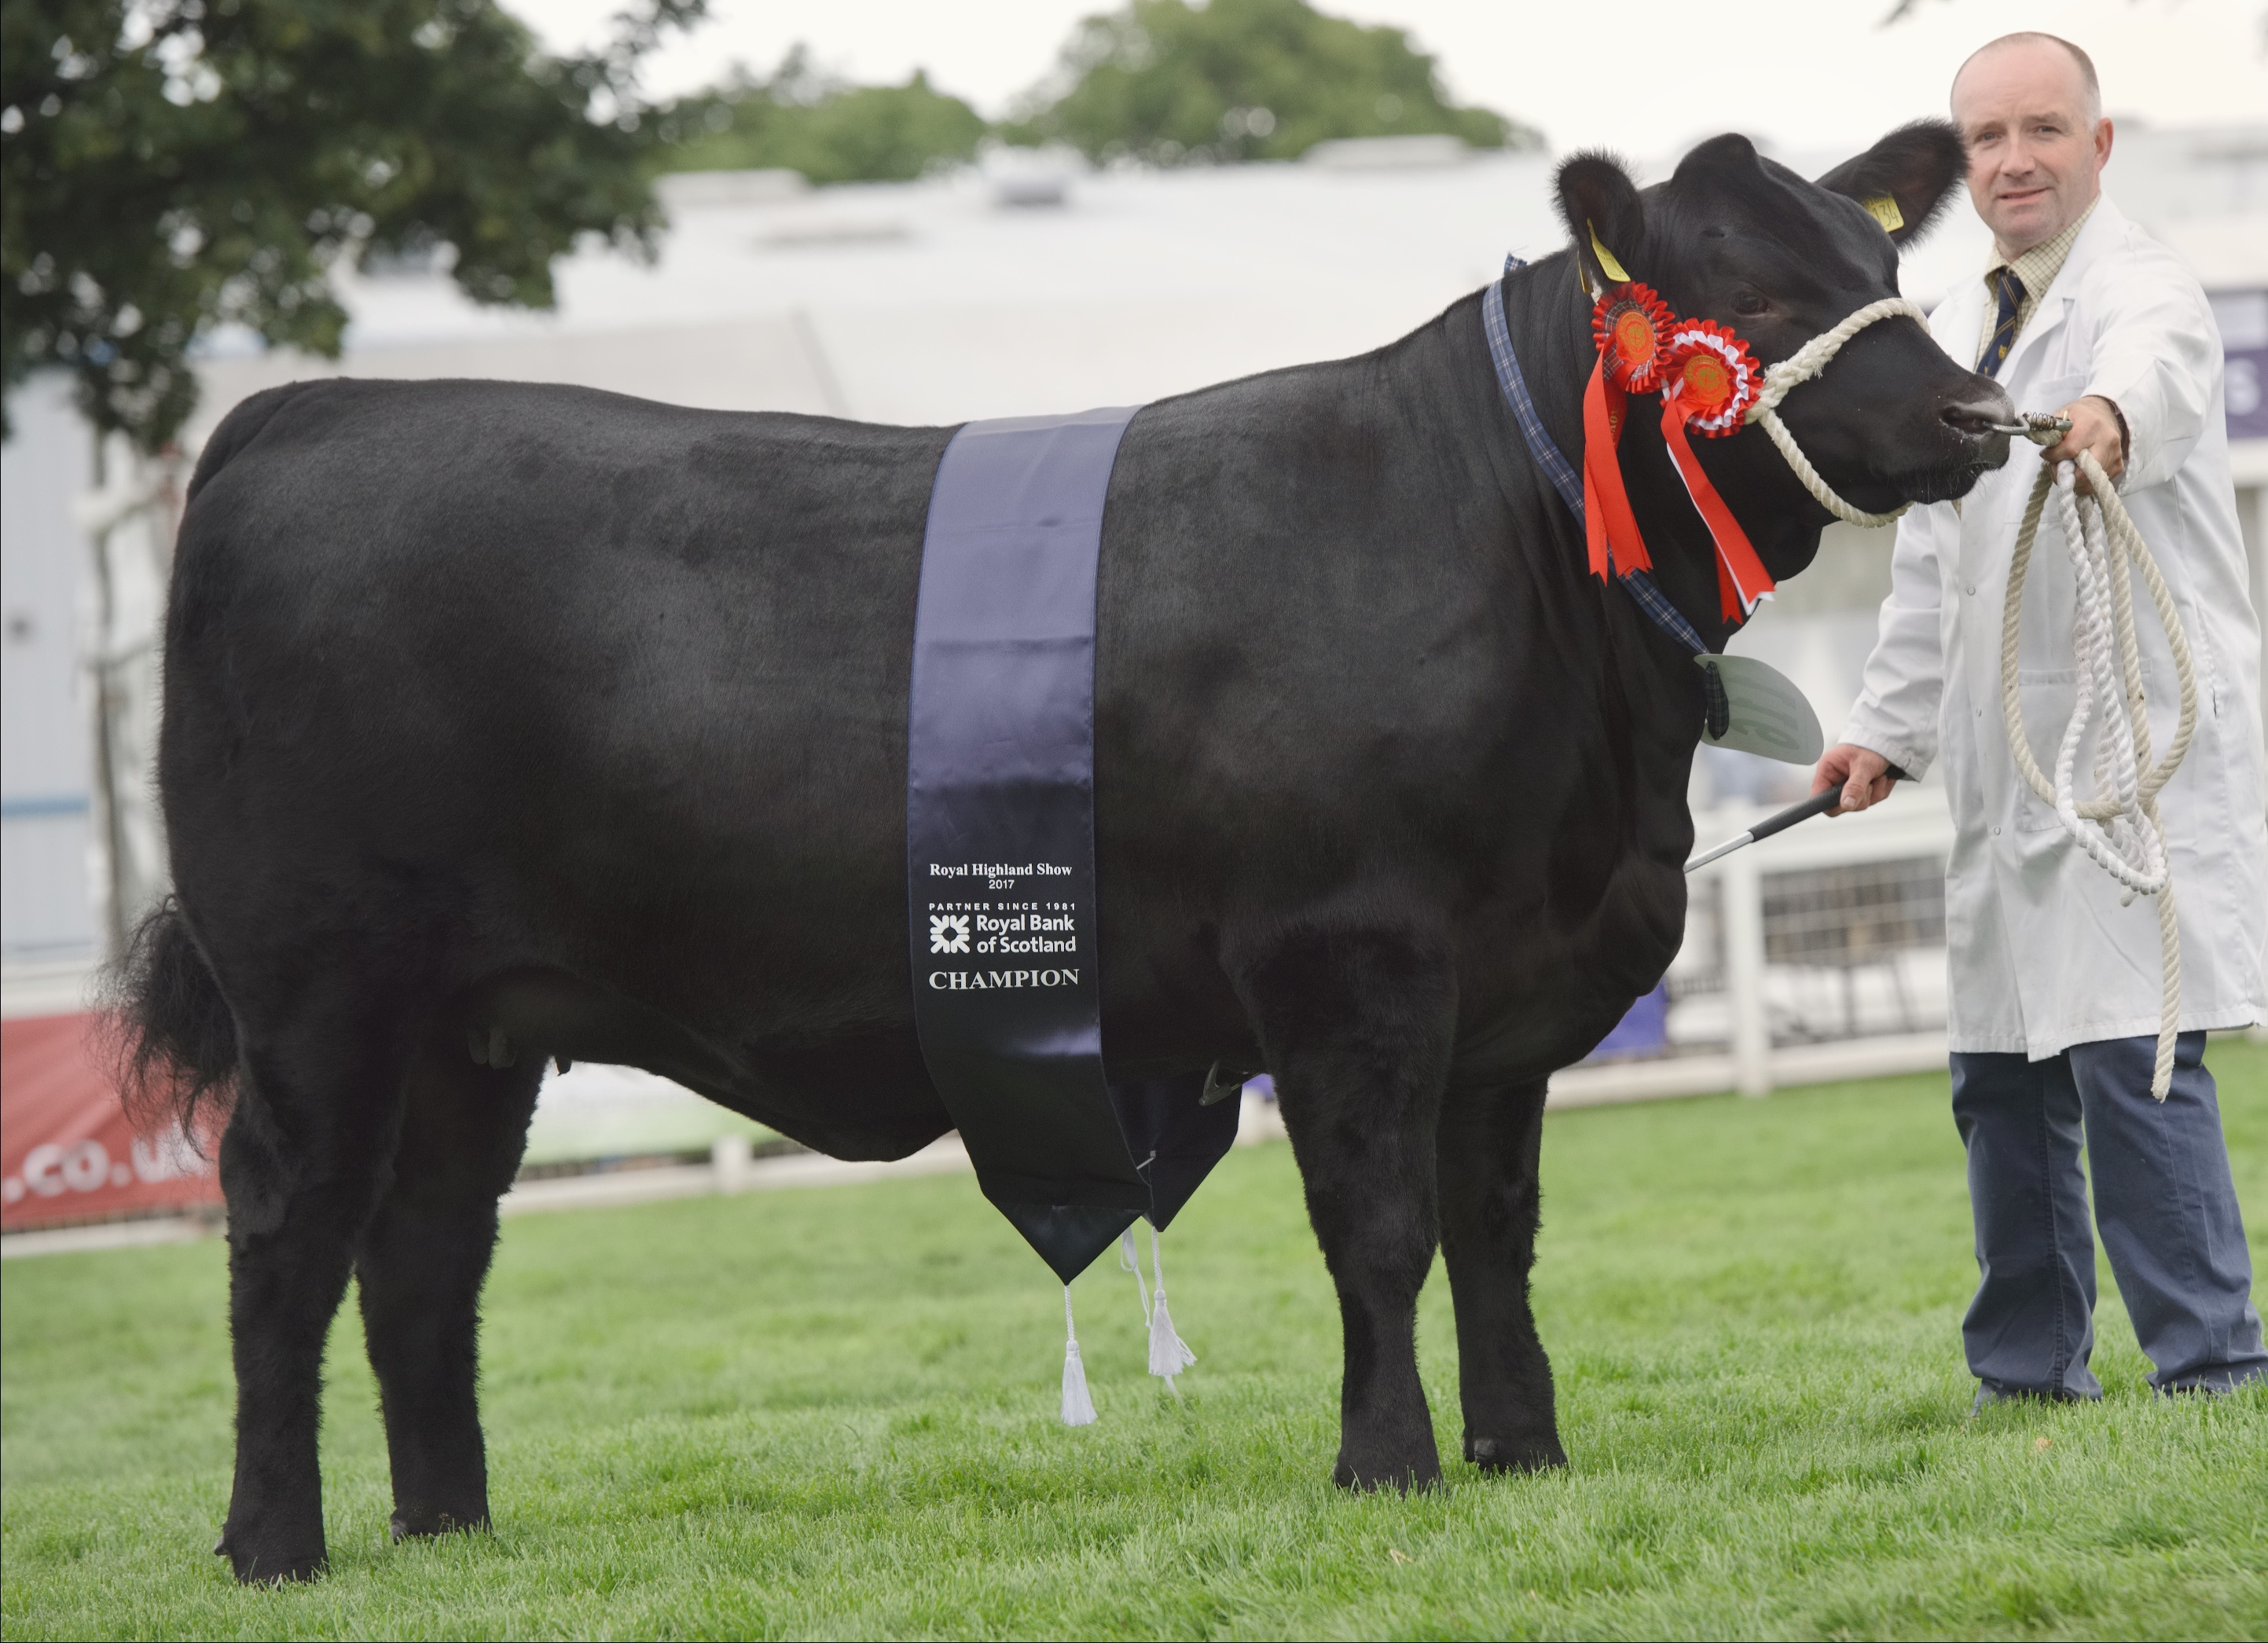 The Aberdeen-Angus entry at the Highland Show was the biggest for many years